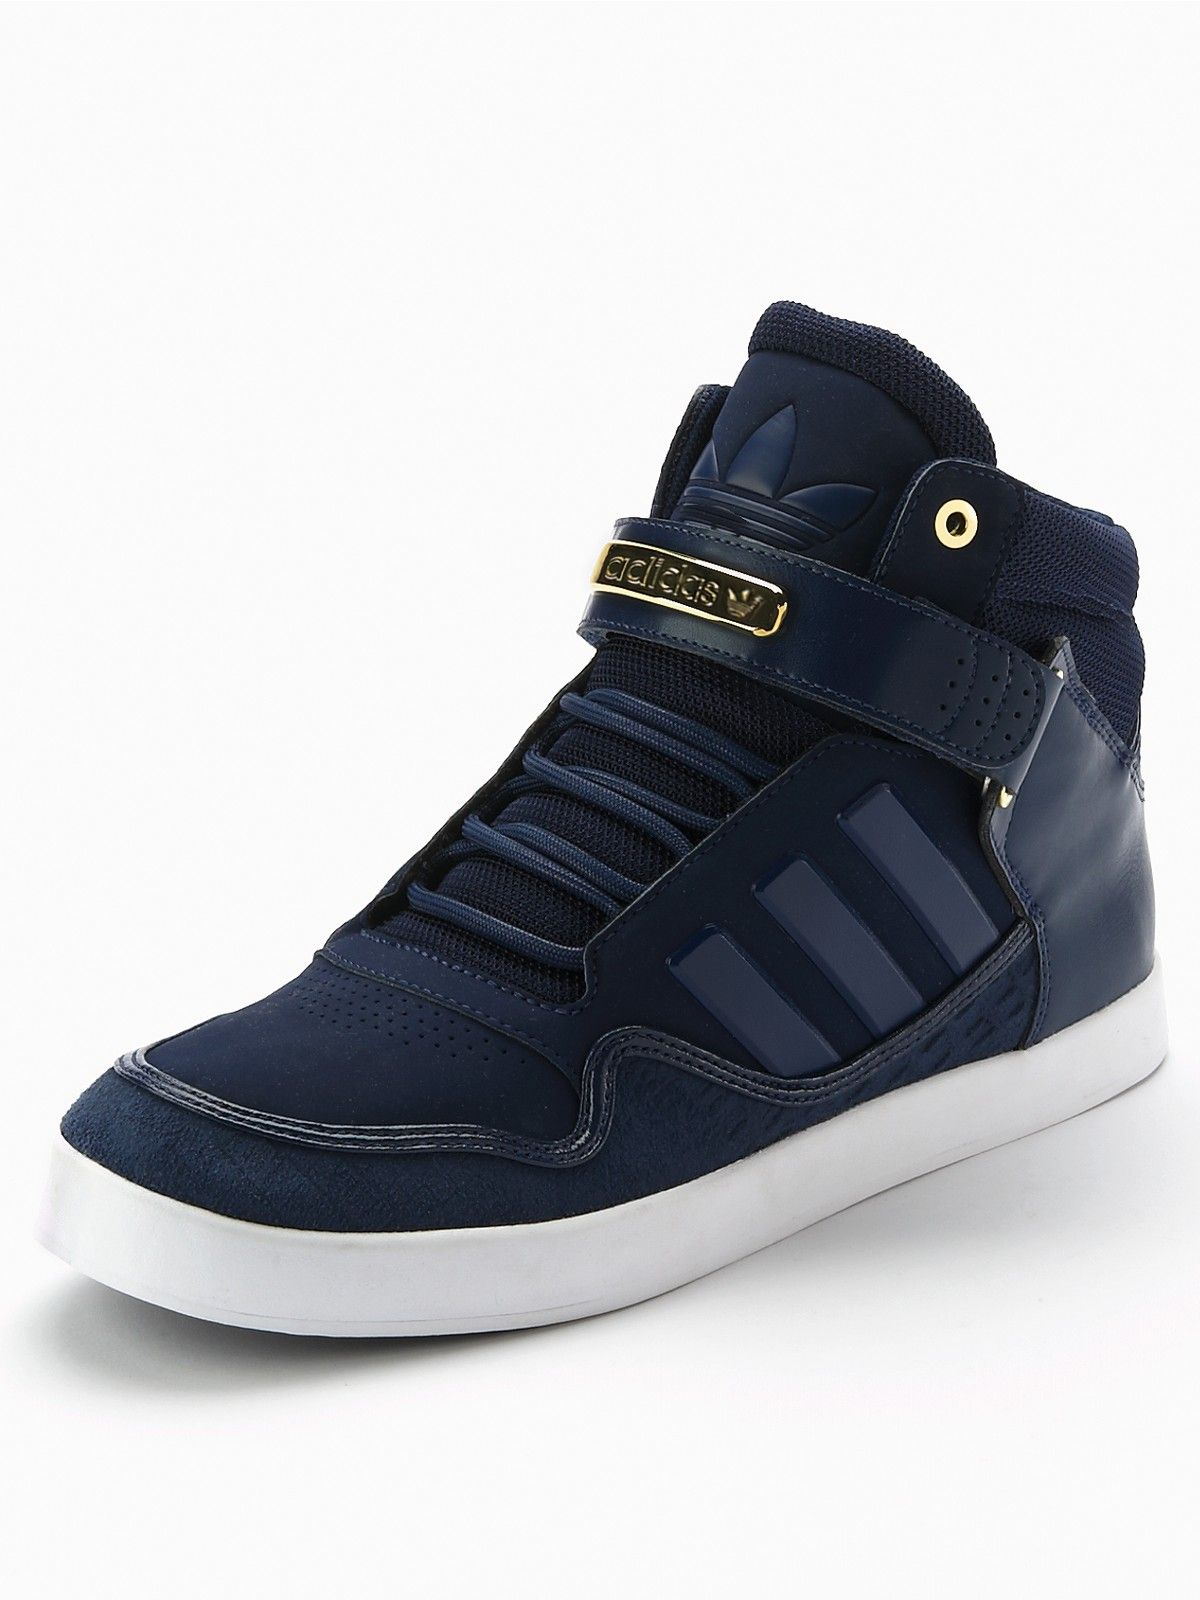 Adidas Originals AdiRise 2.0 Hi Top Beautiful sneakers